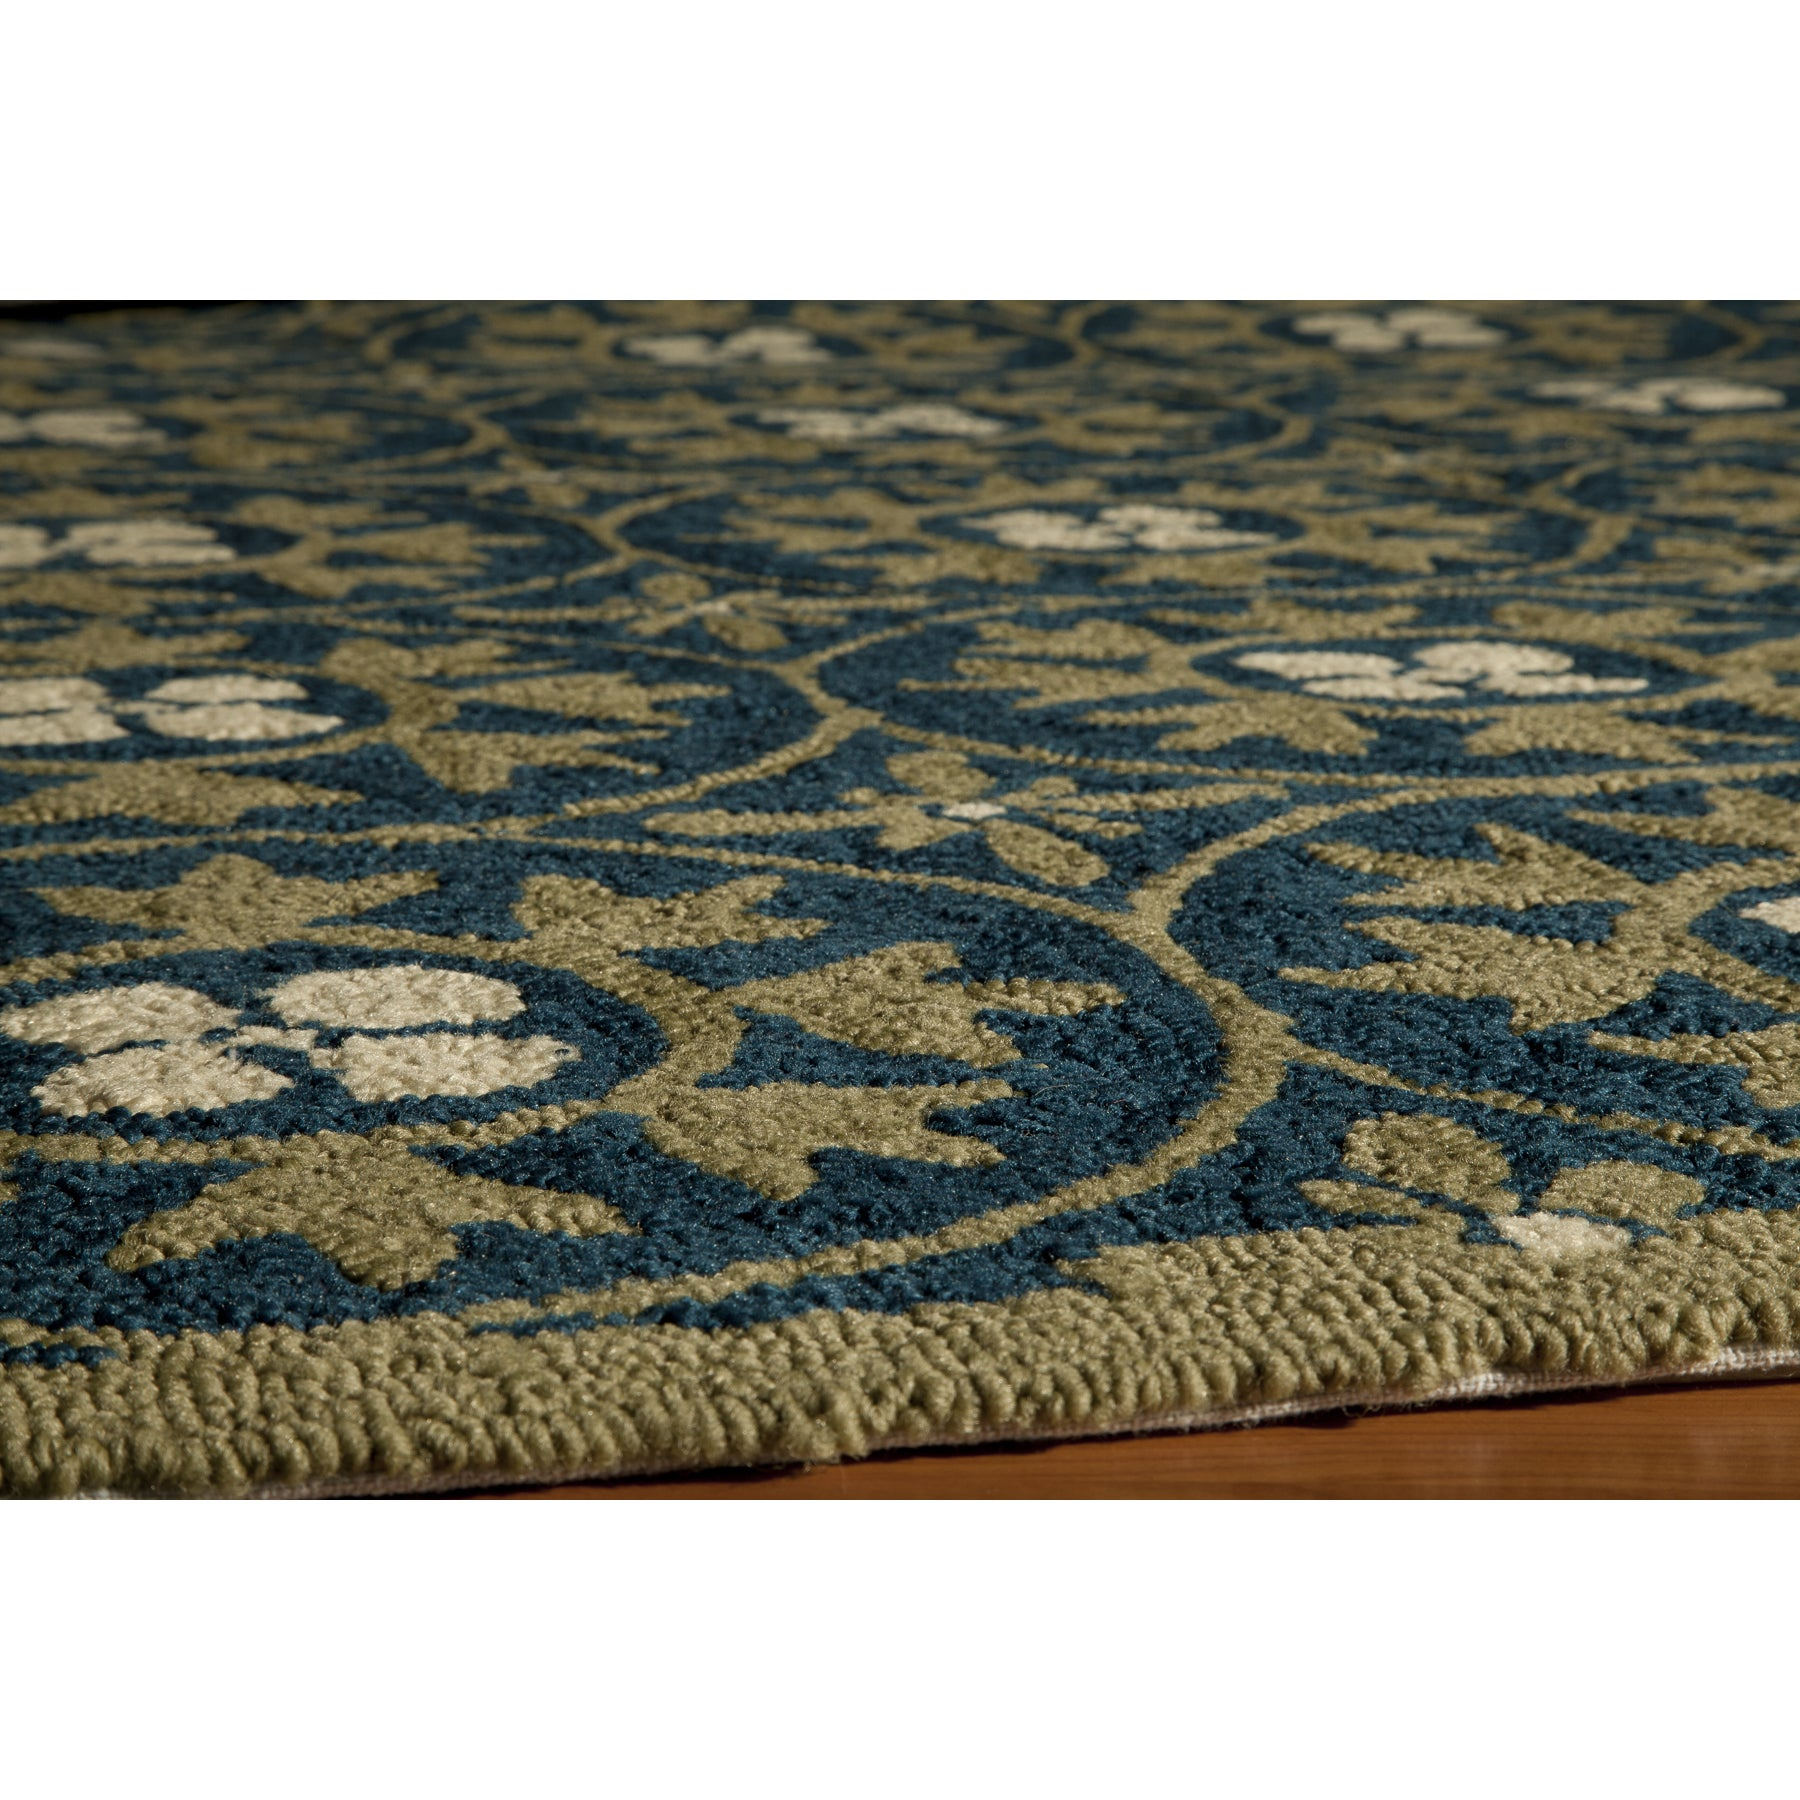 Momeni Veranda Blue Moroccan Tile Indoor Outdoor Rug 3 9 X 5 9